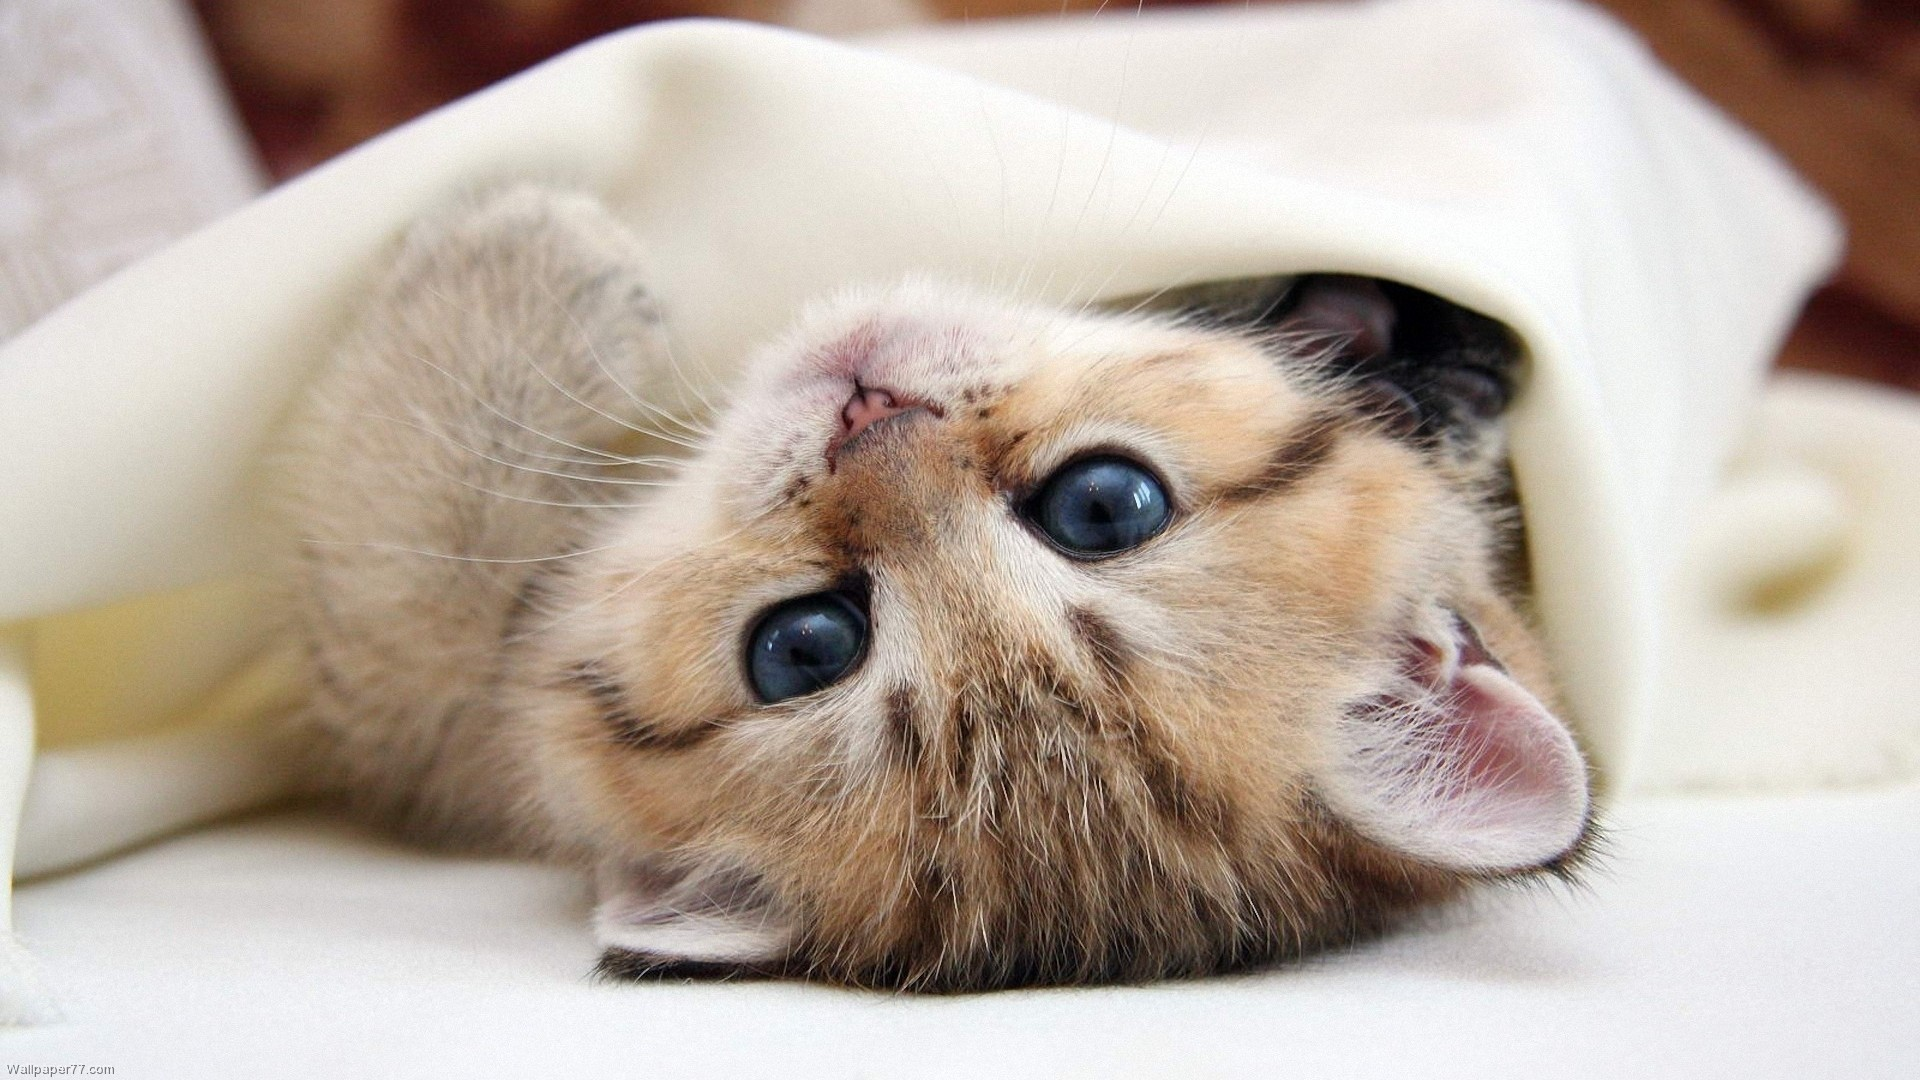 1920x1080 High Resolution Cute Baby Animal Kitty Cat Wallpaper HD 17 Full .